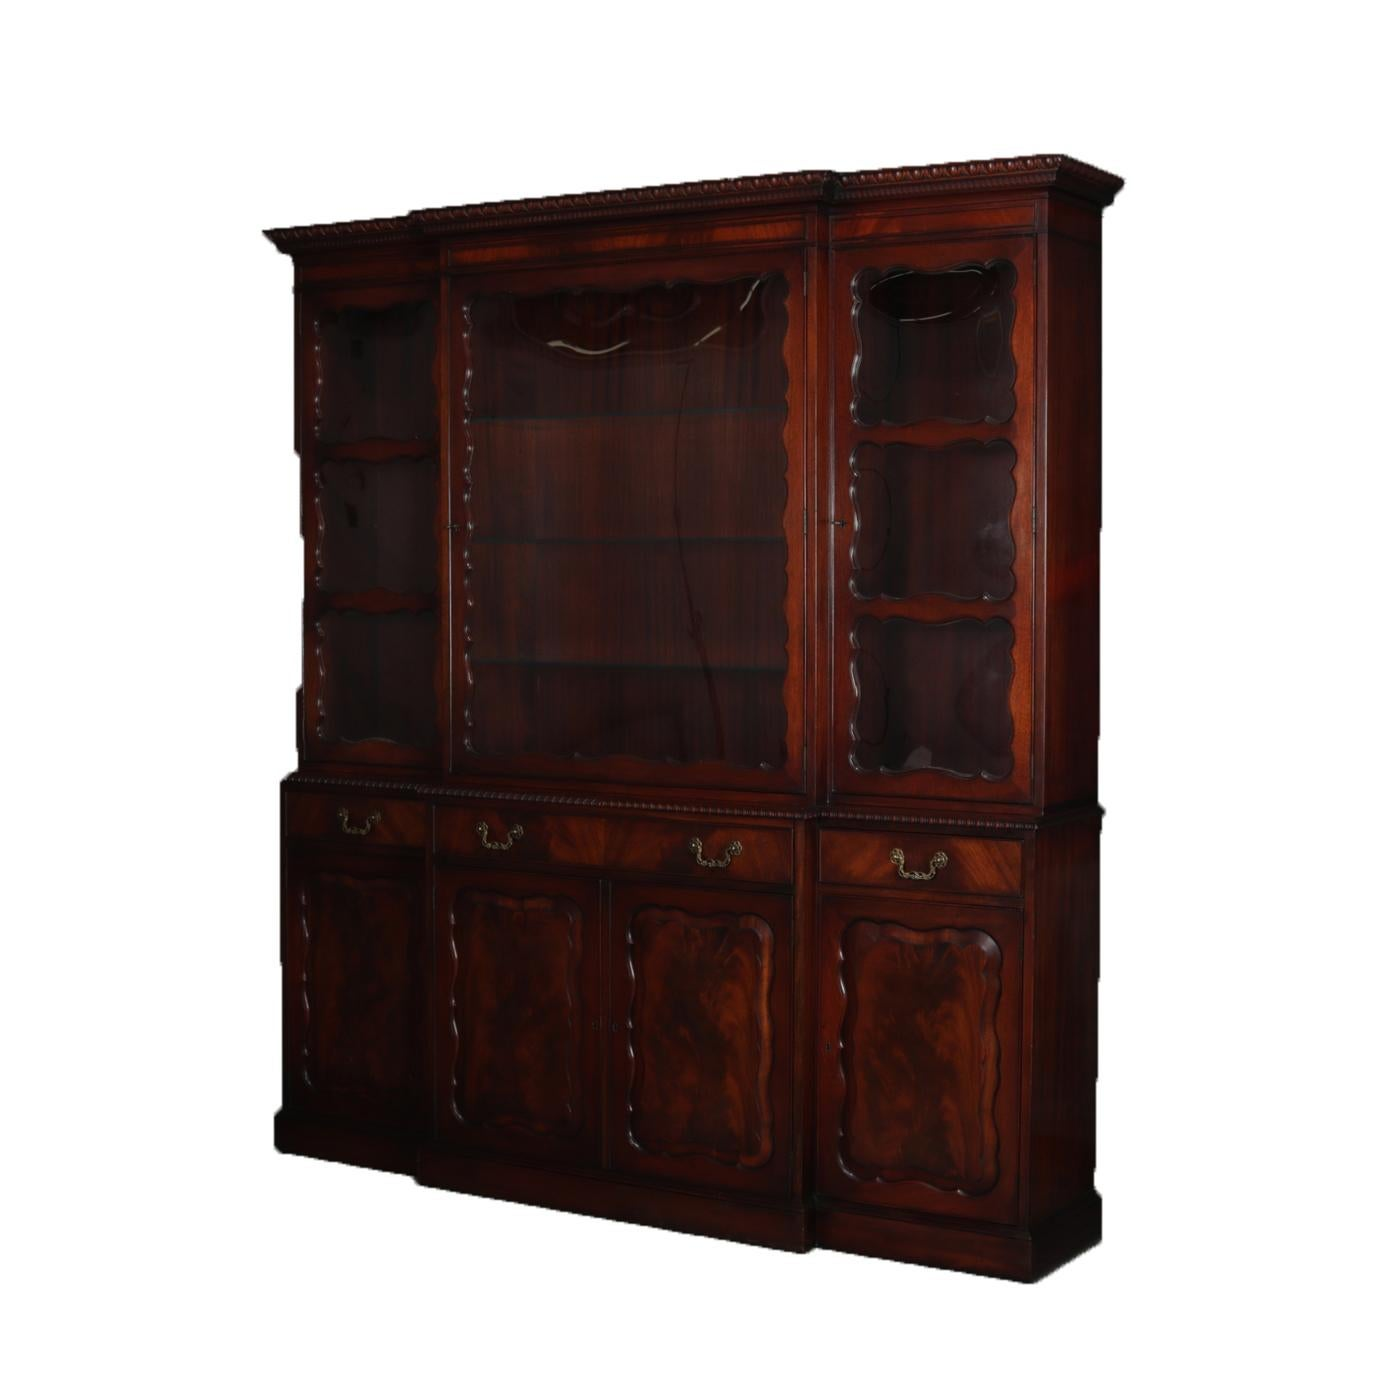 Federal Style Breakfront Lighted Cabinet By Grosfeld House, New York  Features Upper With Large Central